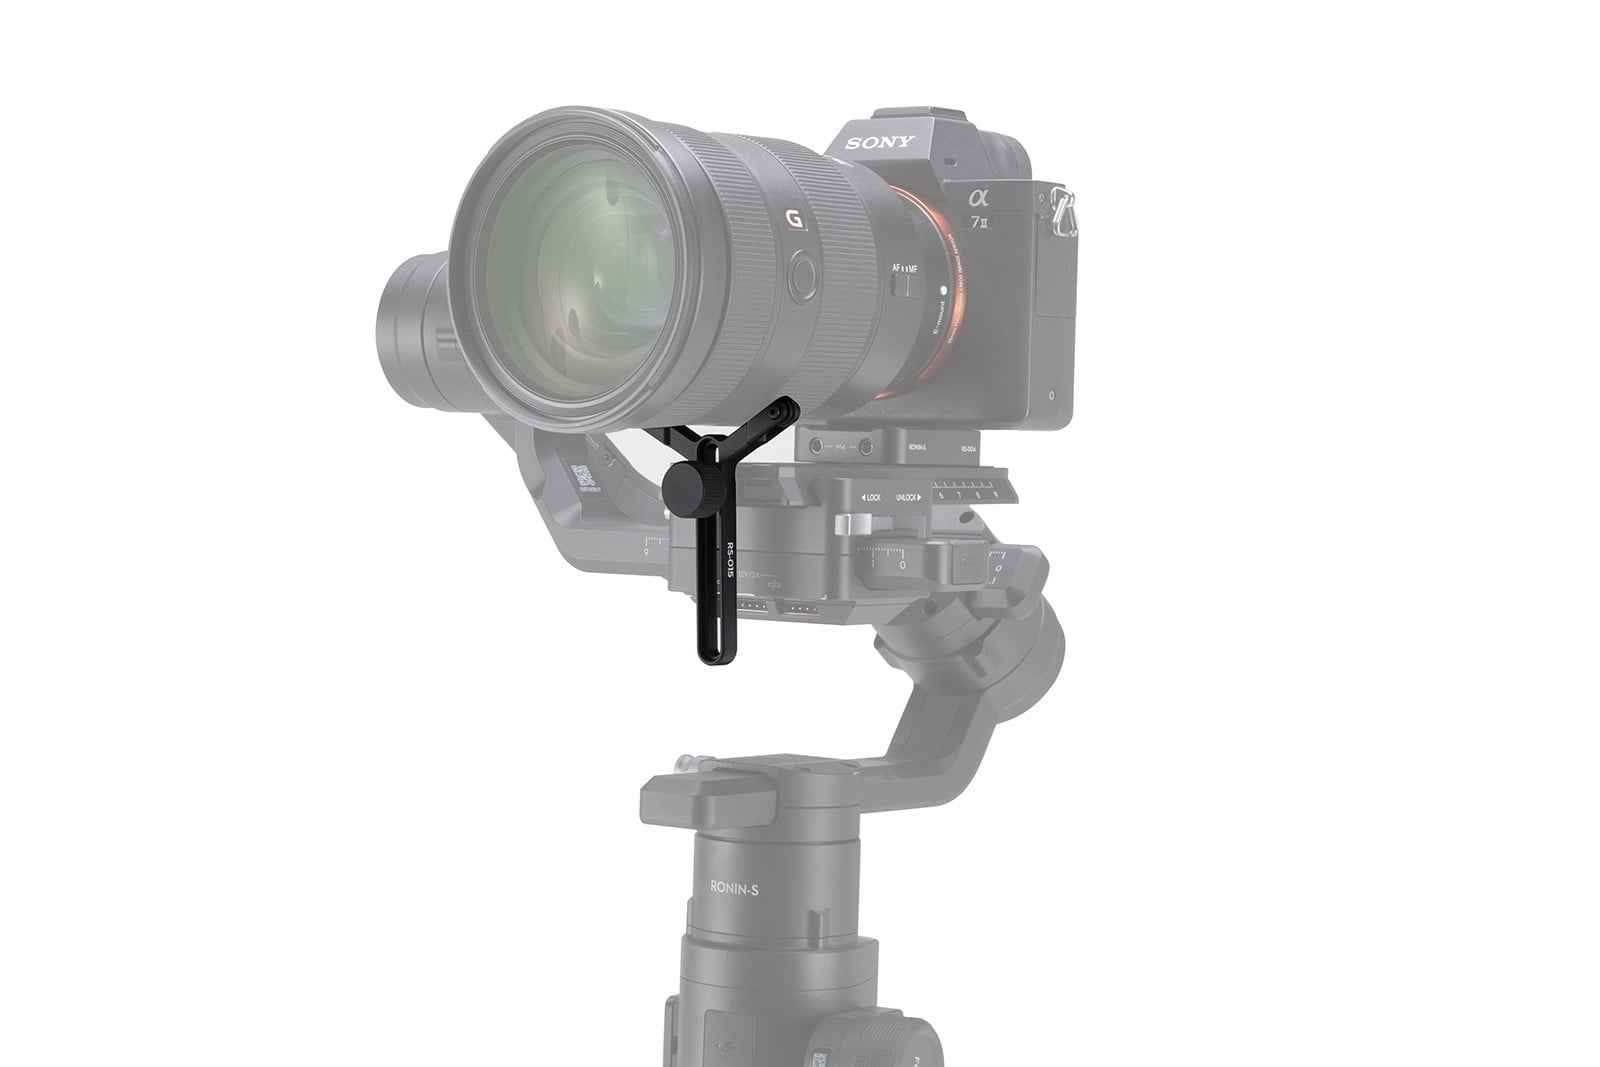 dji ronin s accessories announced extended lens support 2